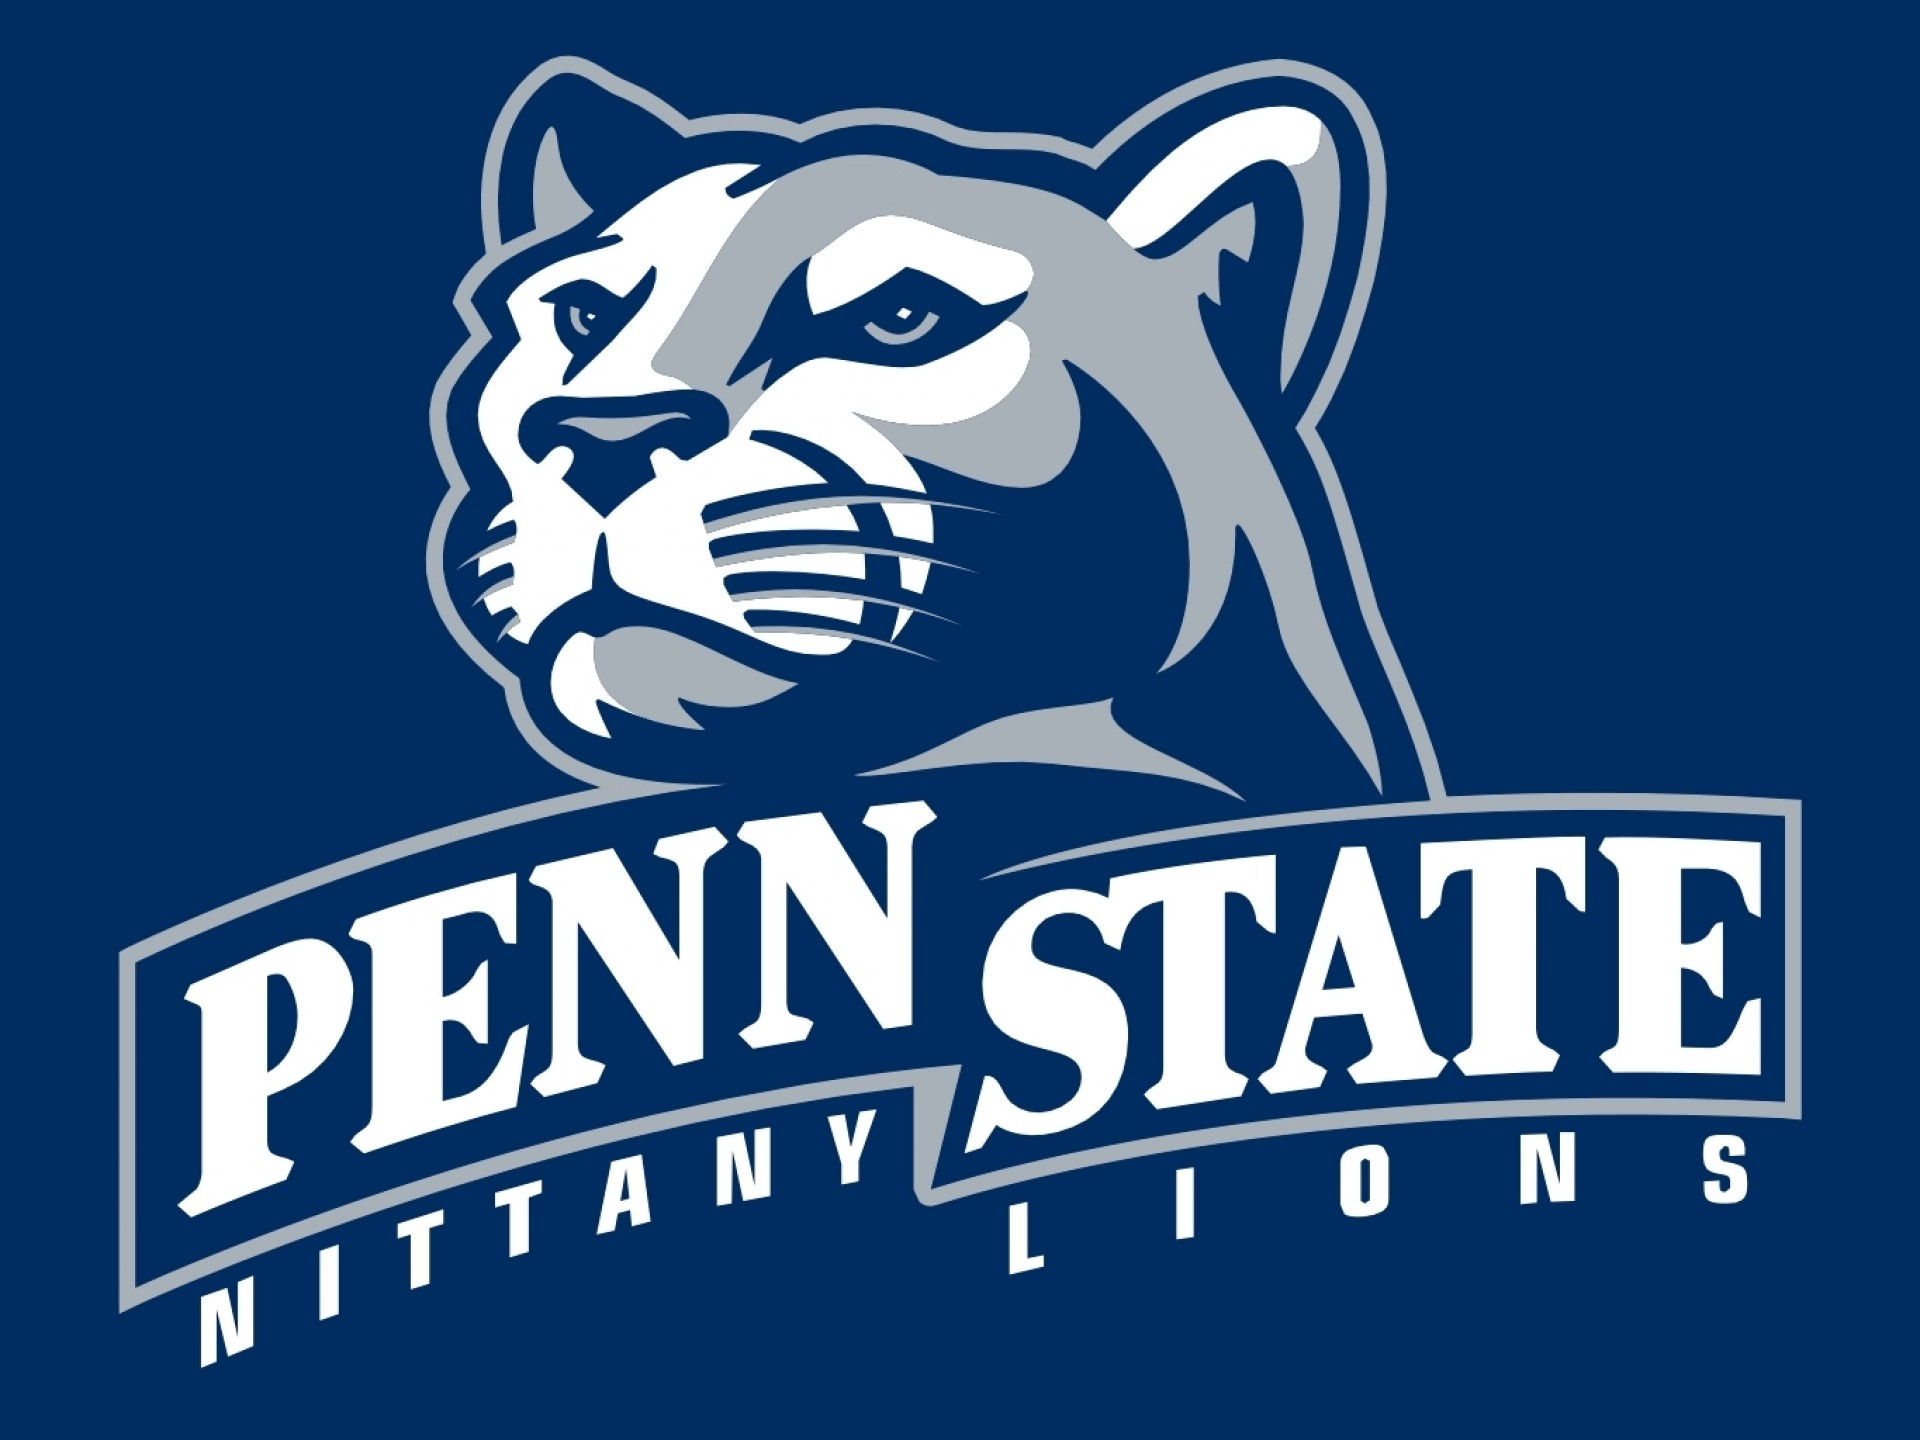 021 Power Ranking The Five Penn State Logos College Essay Prompt Honors Essayss Schreyer Length Formidable 2019 Topic Prompts 1920